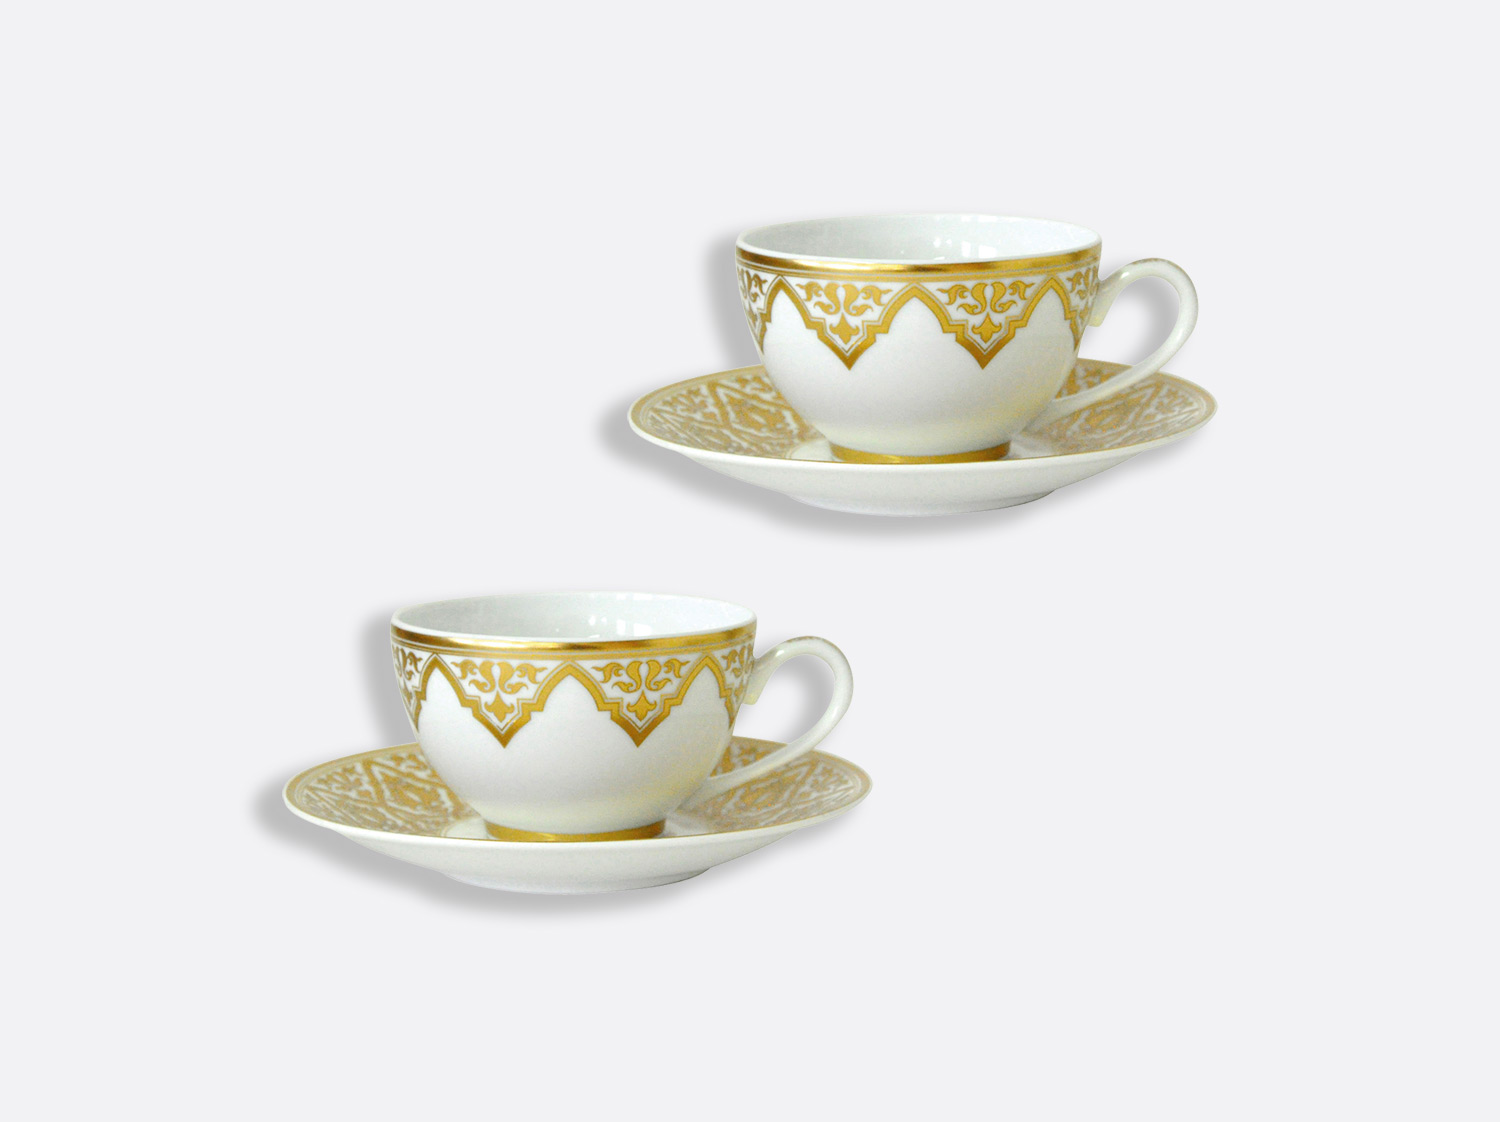 Coffret de tasses & soucoupes thé 13 cl - Coffret de 2 en porcelaine de la collection Venise Bernardaud